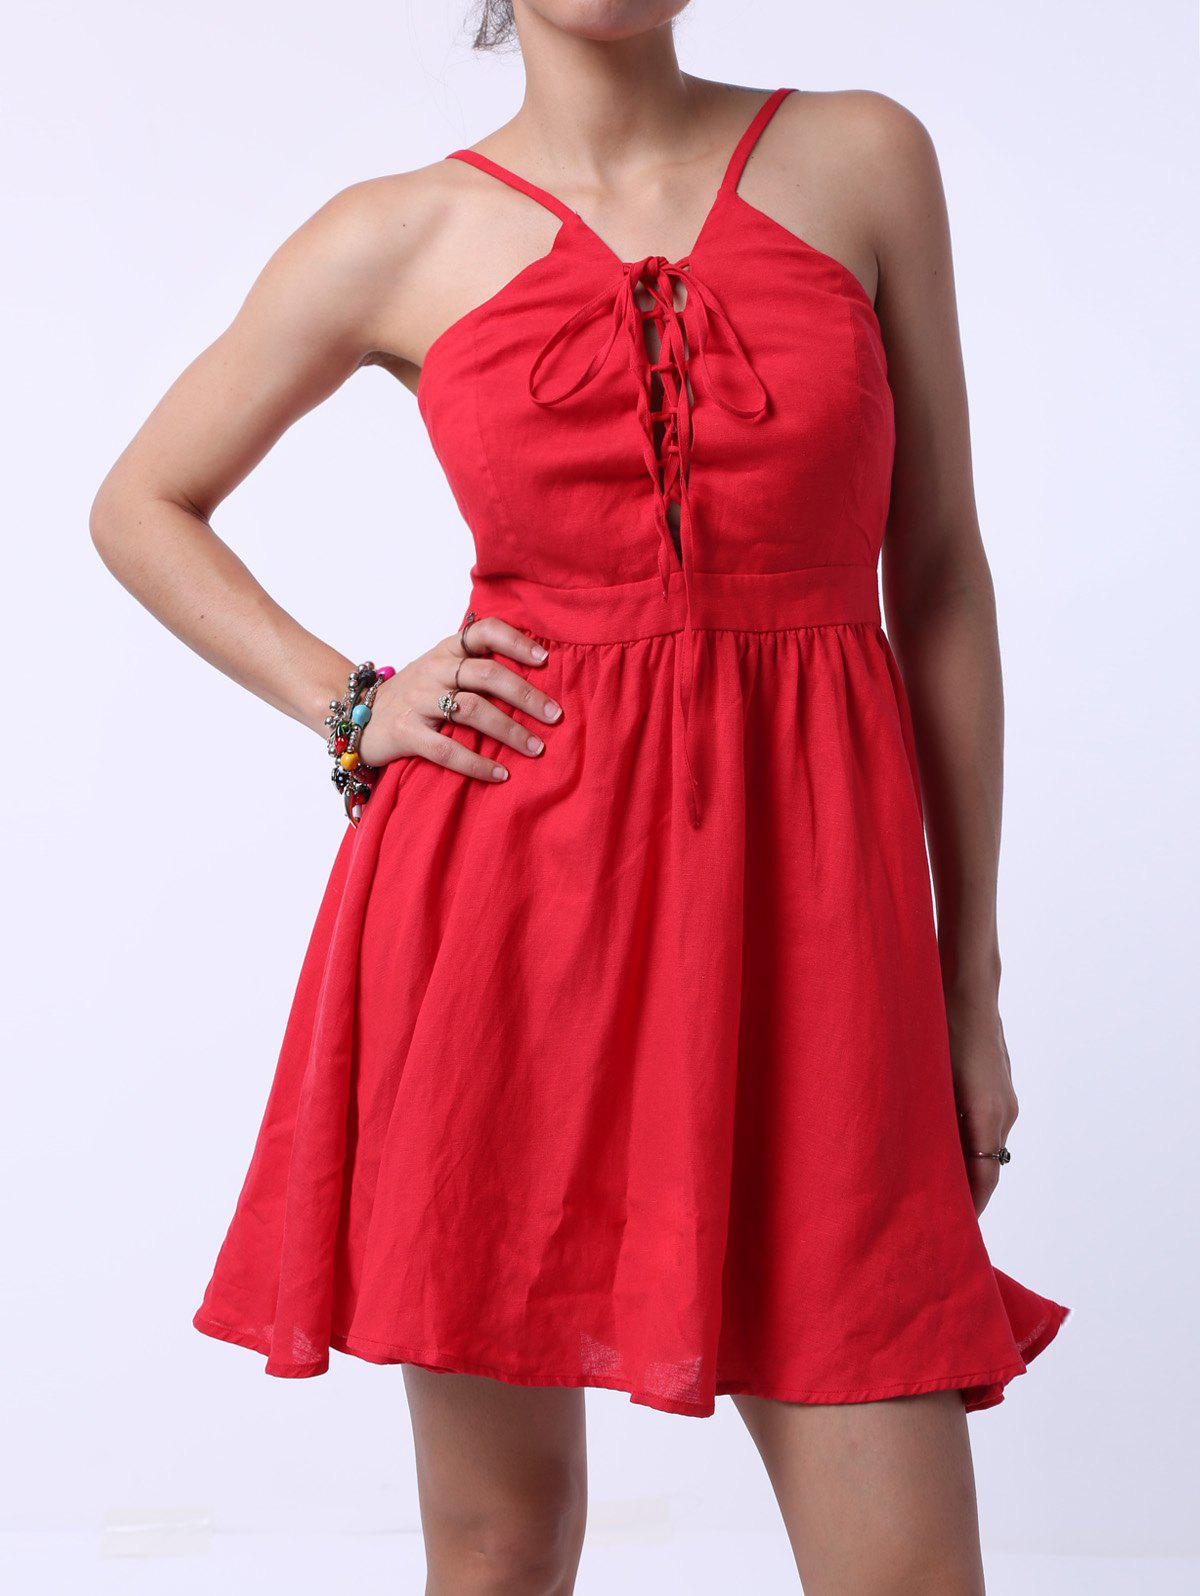 Sexy Women's Strappy Lace-Up A-Line Dress - RED L